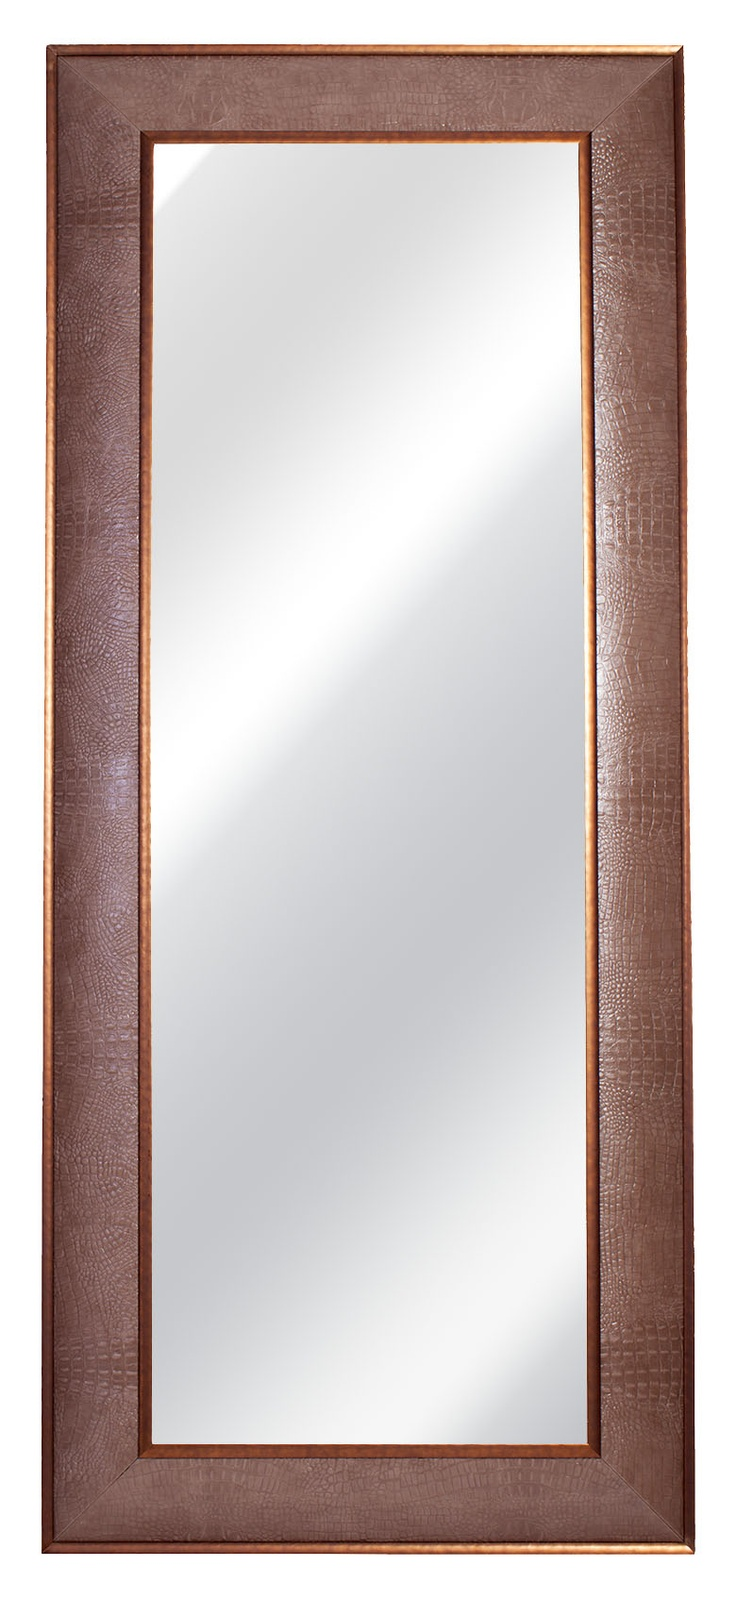 """luxury floor mirrors"" ""designer floor mirrors"" ""custom made floor mirrors"" By InStyle-Decor.com Hollywood, for more ""mirror"" inspirations use our site search box term ""mirror"" luxury floor mirrors, designer floor mirrors, custom made floor mirrors, custom floor mirrors, high quality floor mirrors, high end floor mirrors, modern floor mirrors, contemporary floor mirrors, luxury furniture, luxury furniture brands, luxury furniture stores, luxury lighting, designer furniture, home decor,"